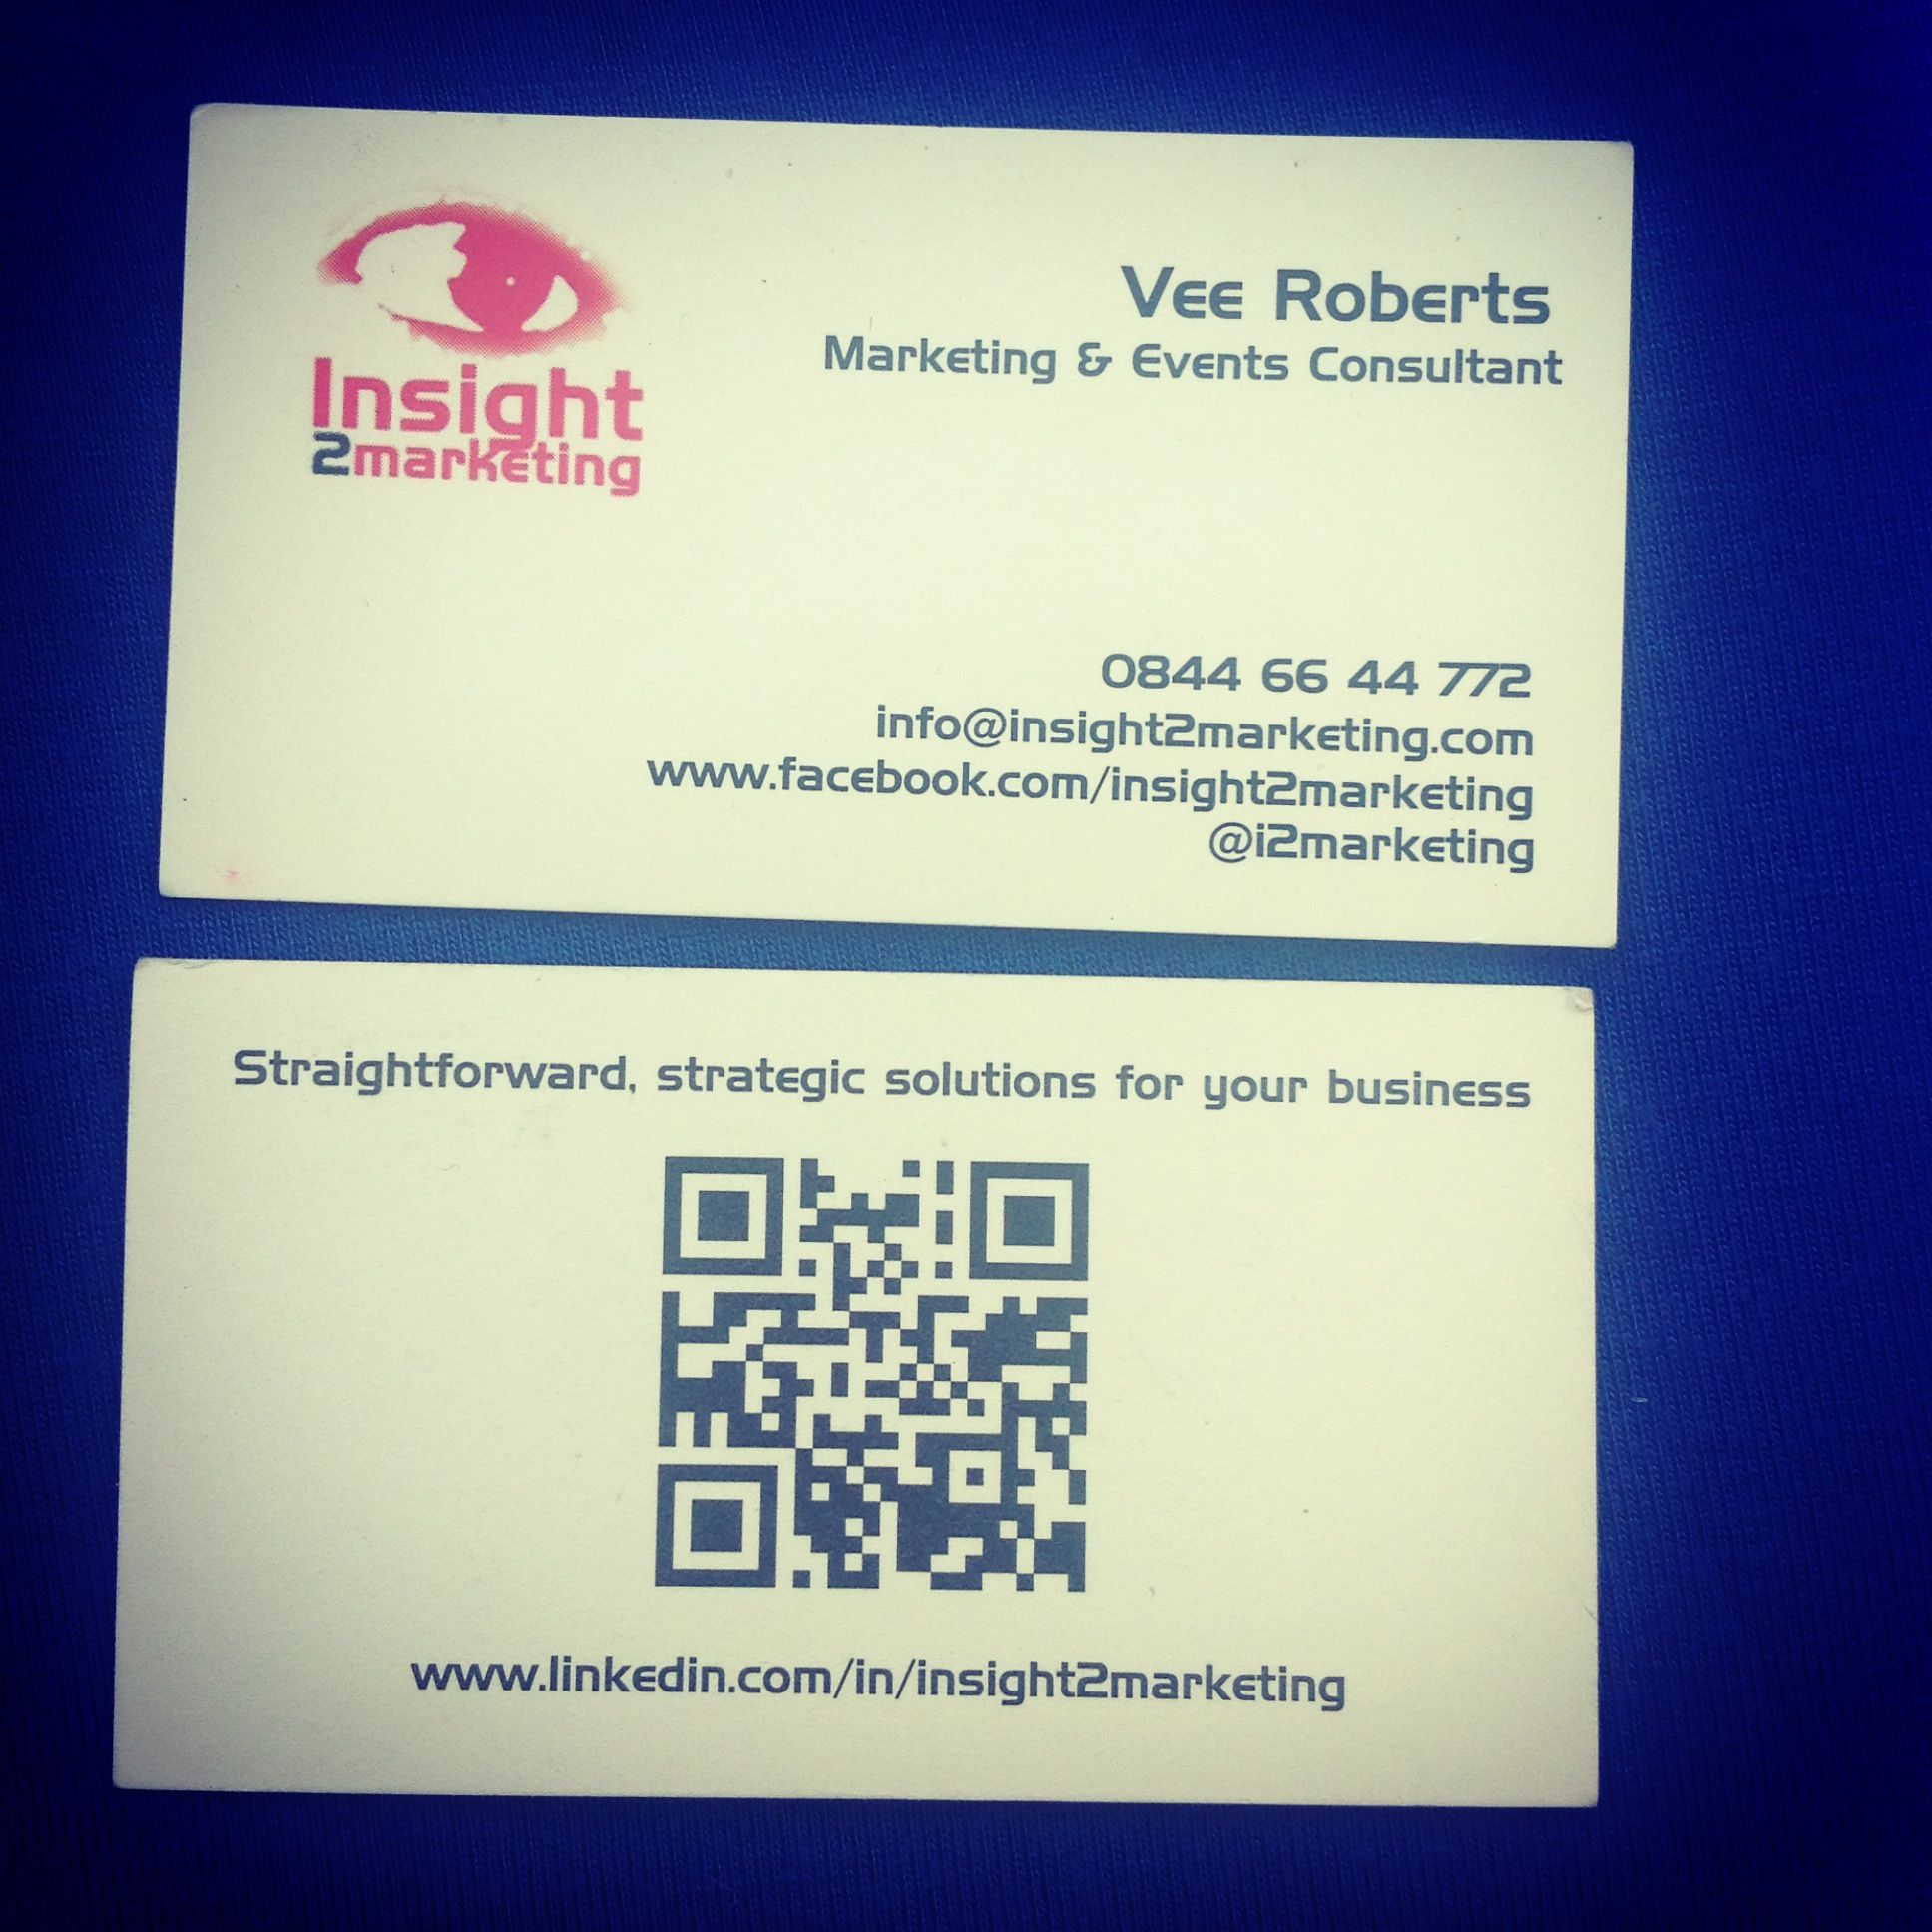 QR Codes on business cards: the basics